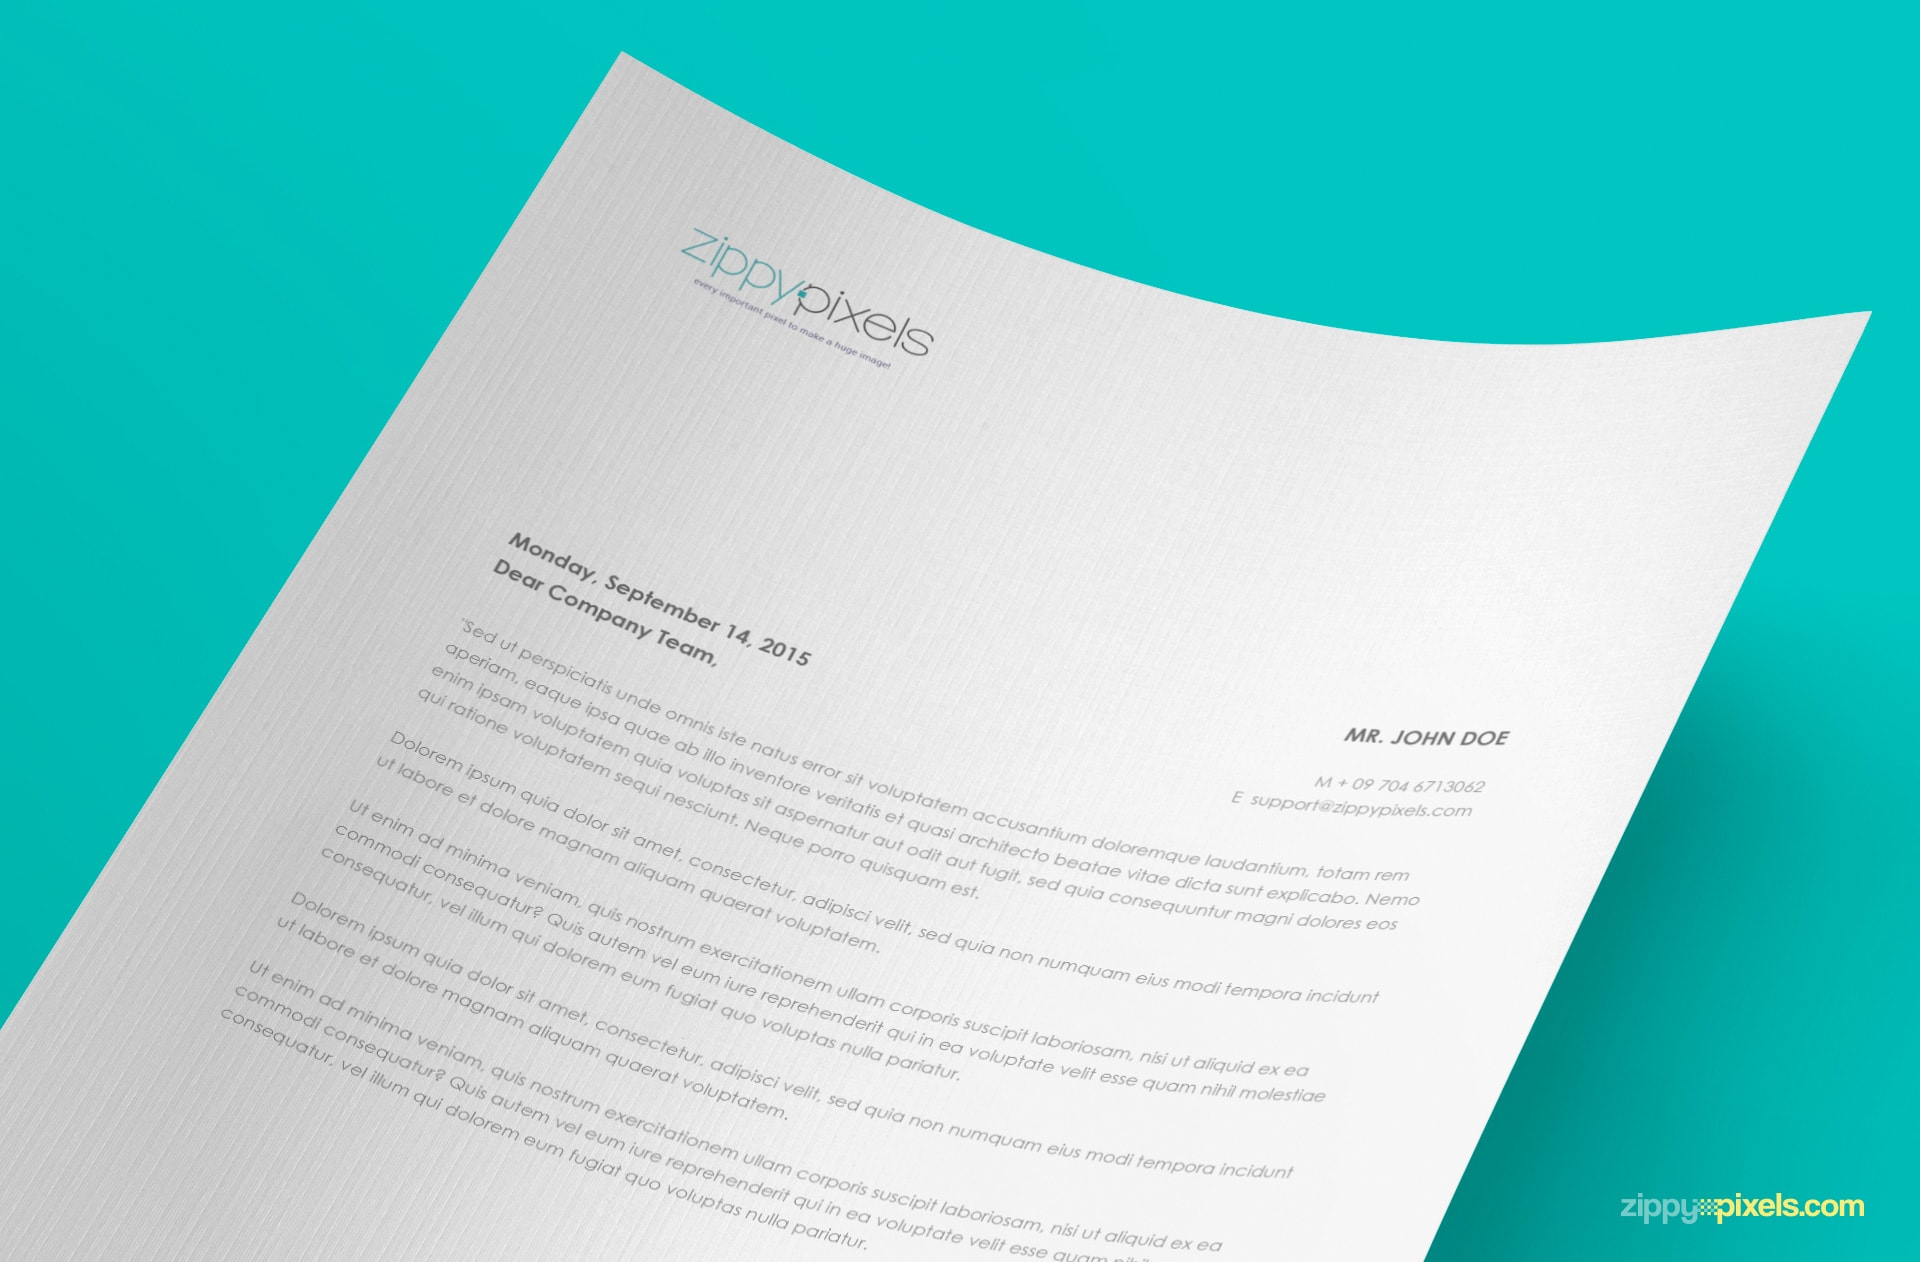 free a4 paper mock-up in curved view